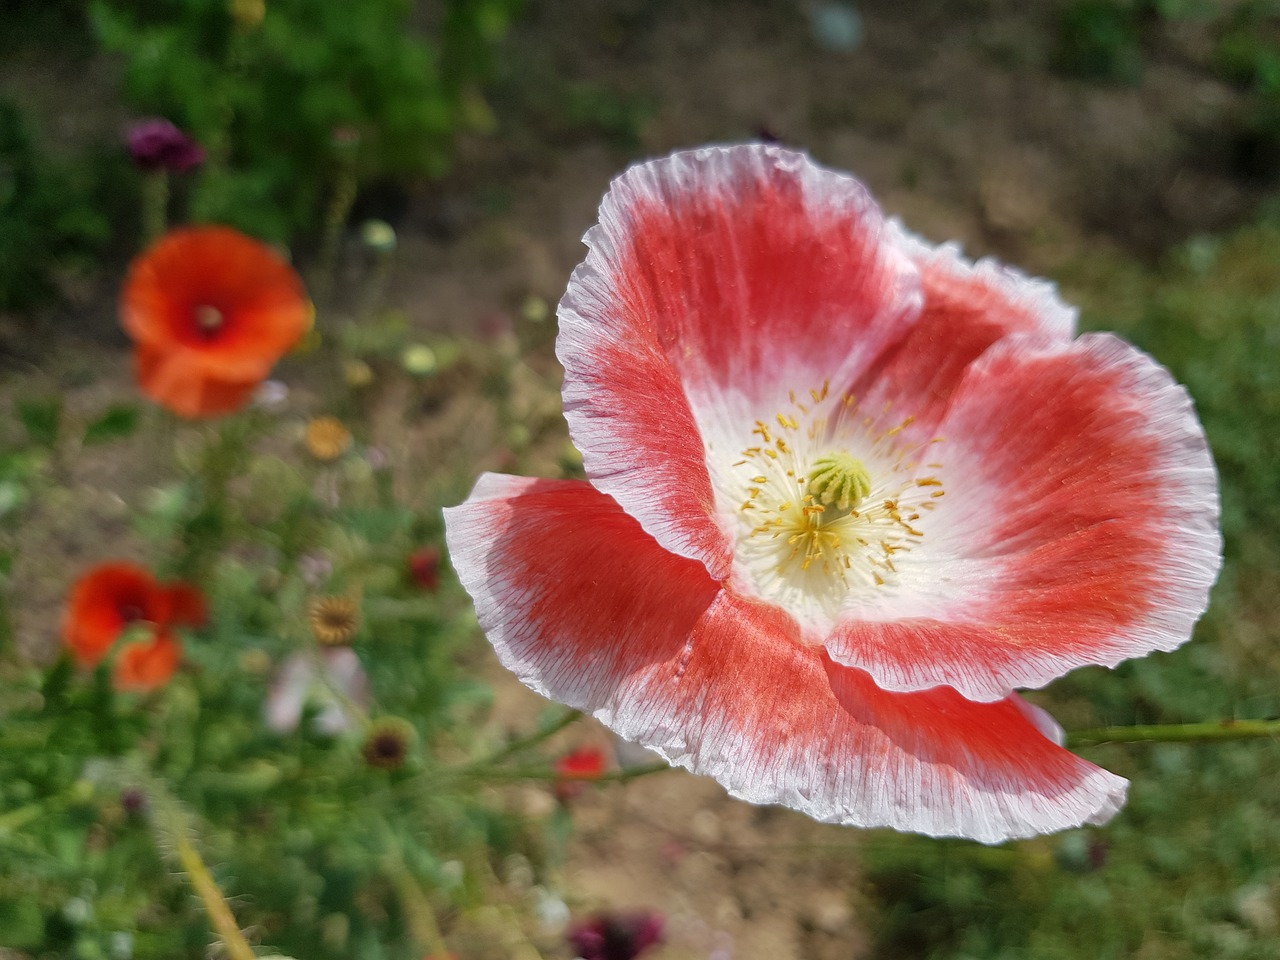 anemone, summer flower summer image, summer posters, picture poetry, red, rotweiss, romance, summer romance, flower garden, natural lawn, pointed flower, blossom, bloom, coloring pages,free pictures, free photos, free images, royalty free, free illustrations, public domain